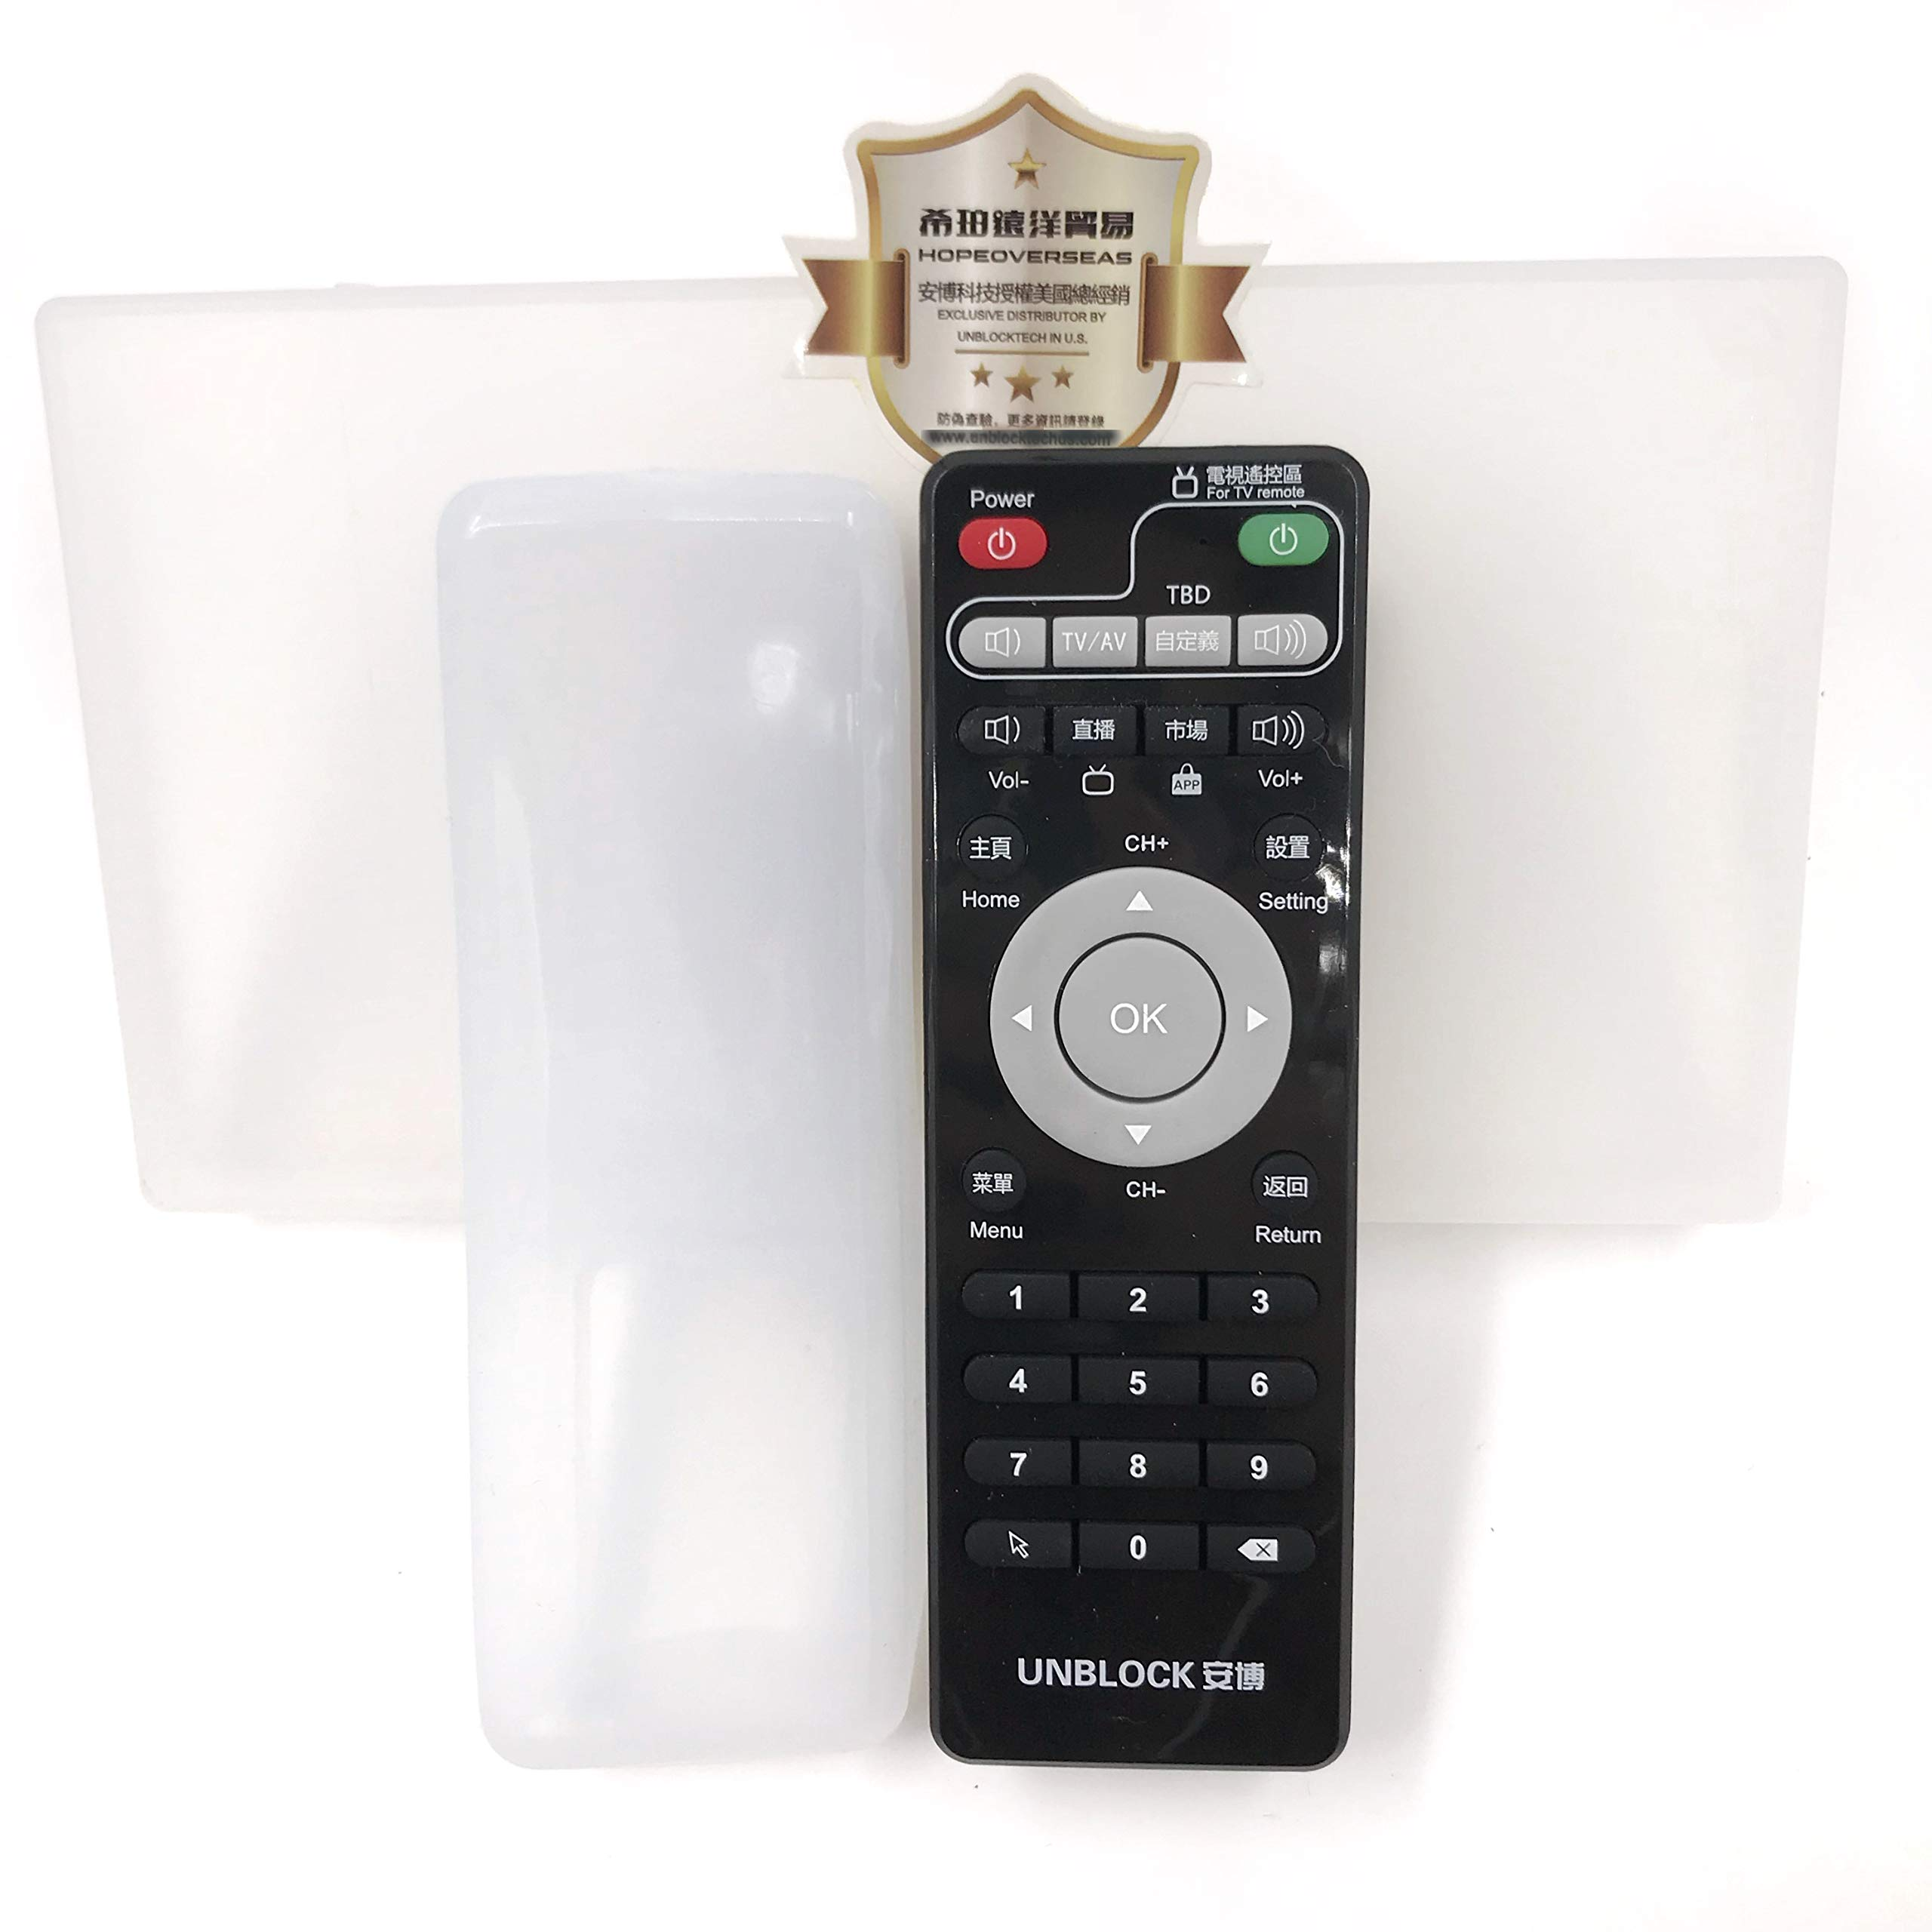 HOPE OVERSEAS Unblock tech Original Remote for ubox, with case in Pack. Support All ubox Model. Supply by Hope overseas Trading, an Authorized Distributor by unblock tech in The United States(Black)